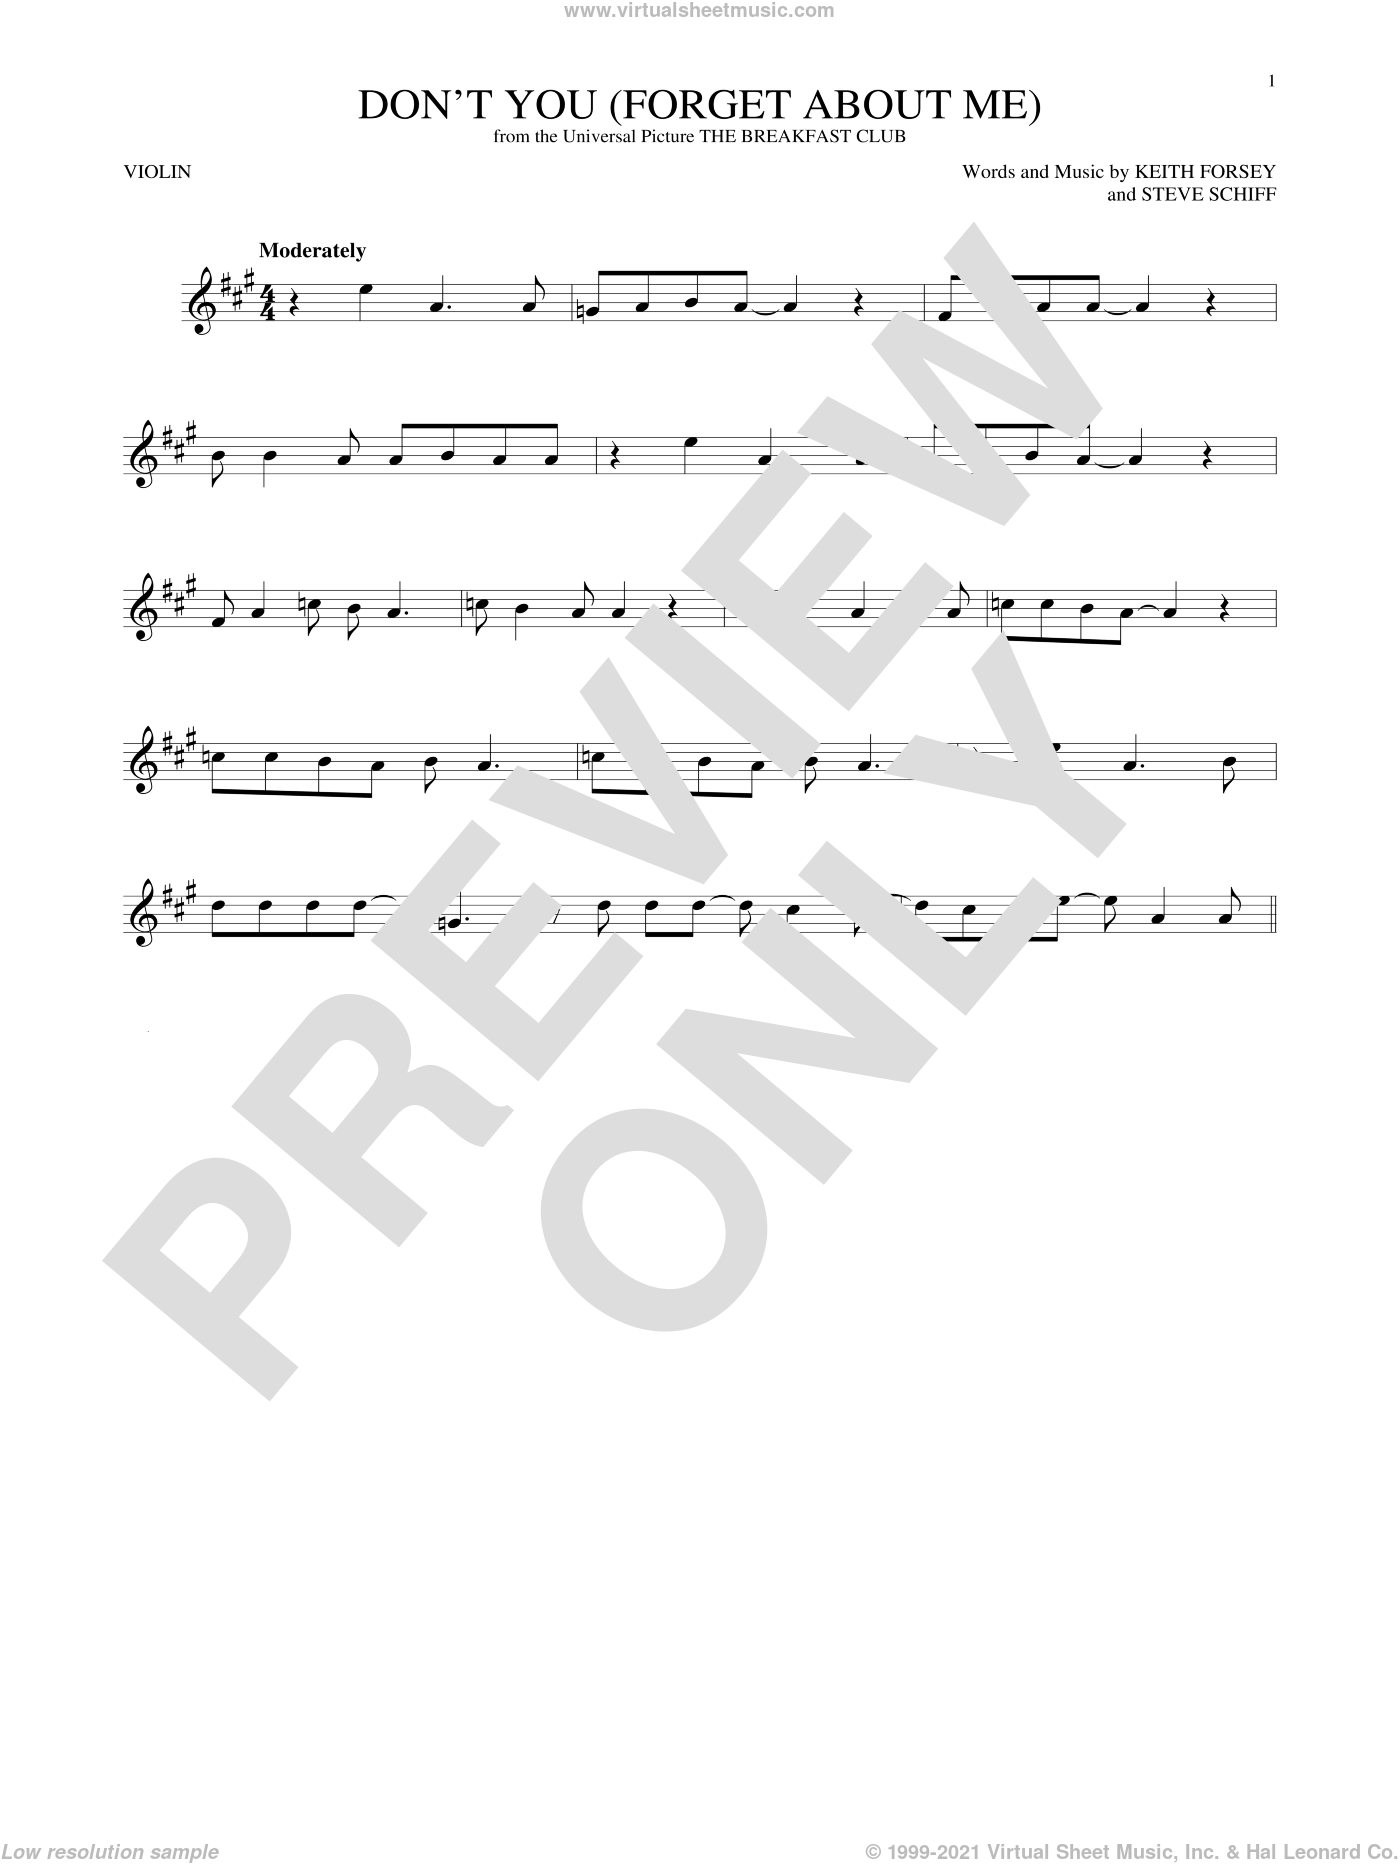 Don't You (Forget About Me) sheet music for violin solo by Simple Minds, Hawk Nelson, Keith Forsey and Steve Schiff, intermediate. Score Image Preview.